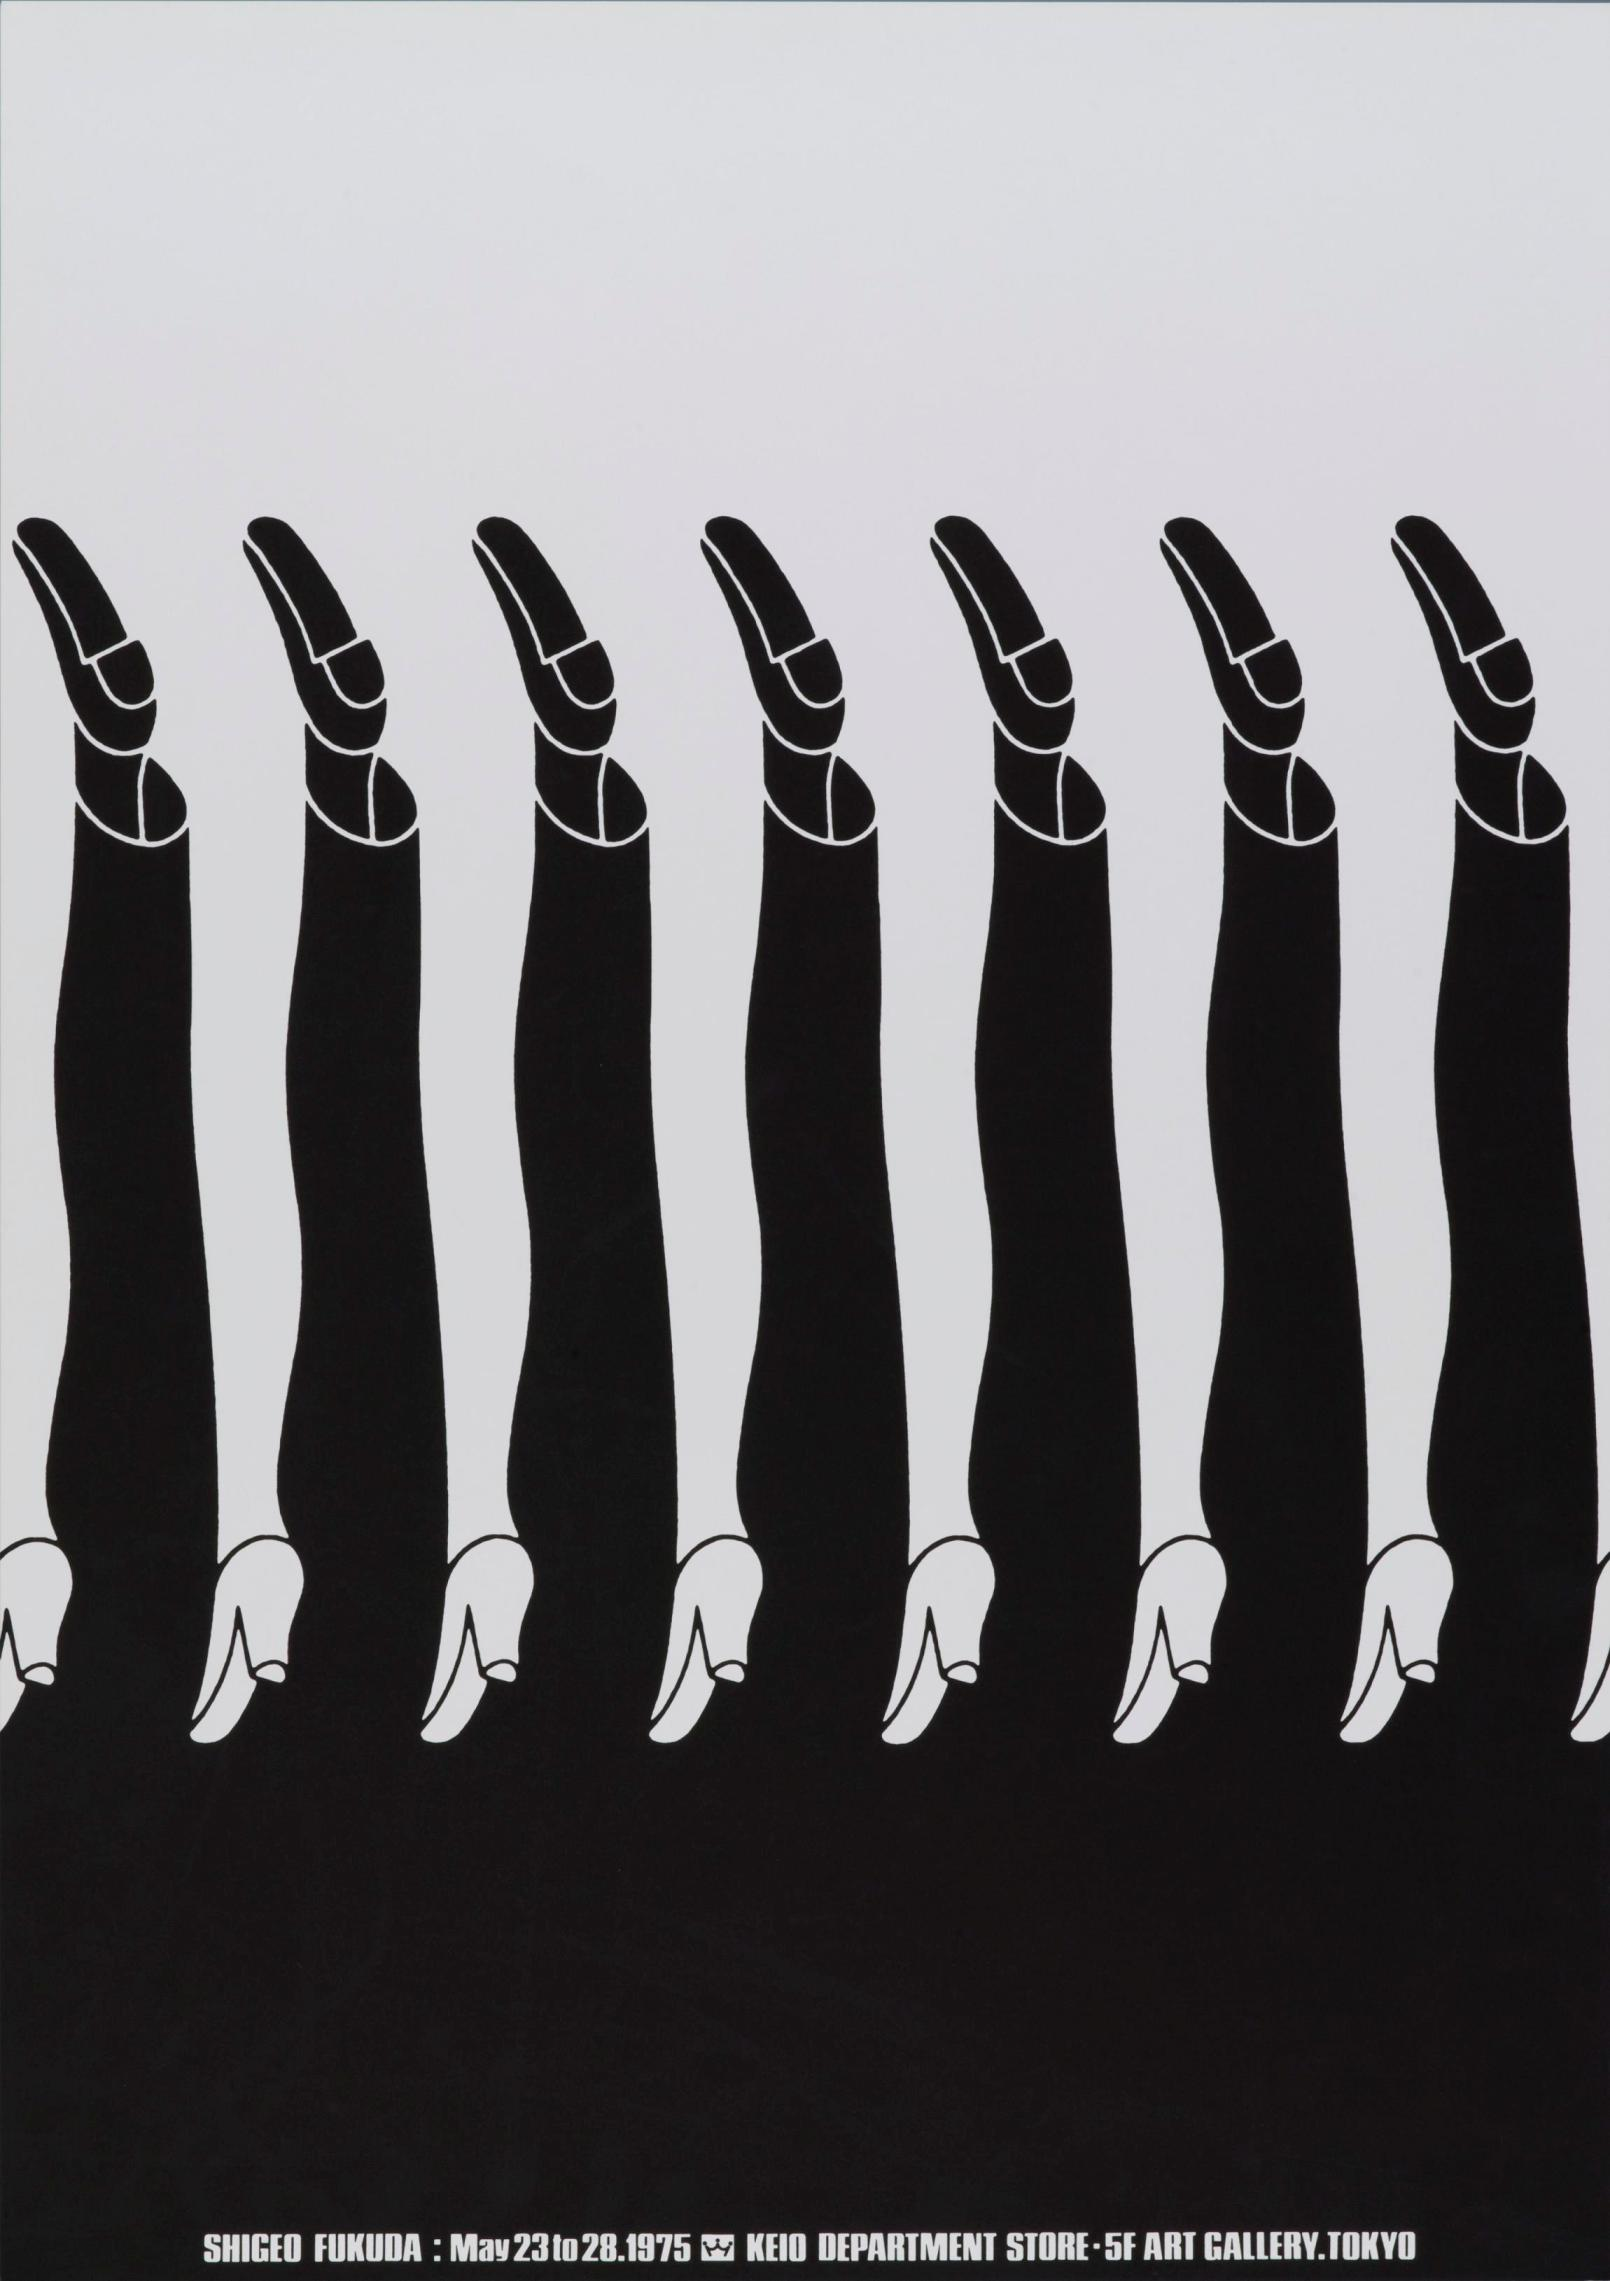 《SHIGEO FUKUDA展》 1975年 ©Shigeo Fukuda ©Photo DNP Foundation for Cultural Promotion